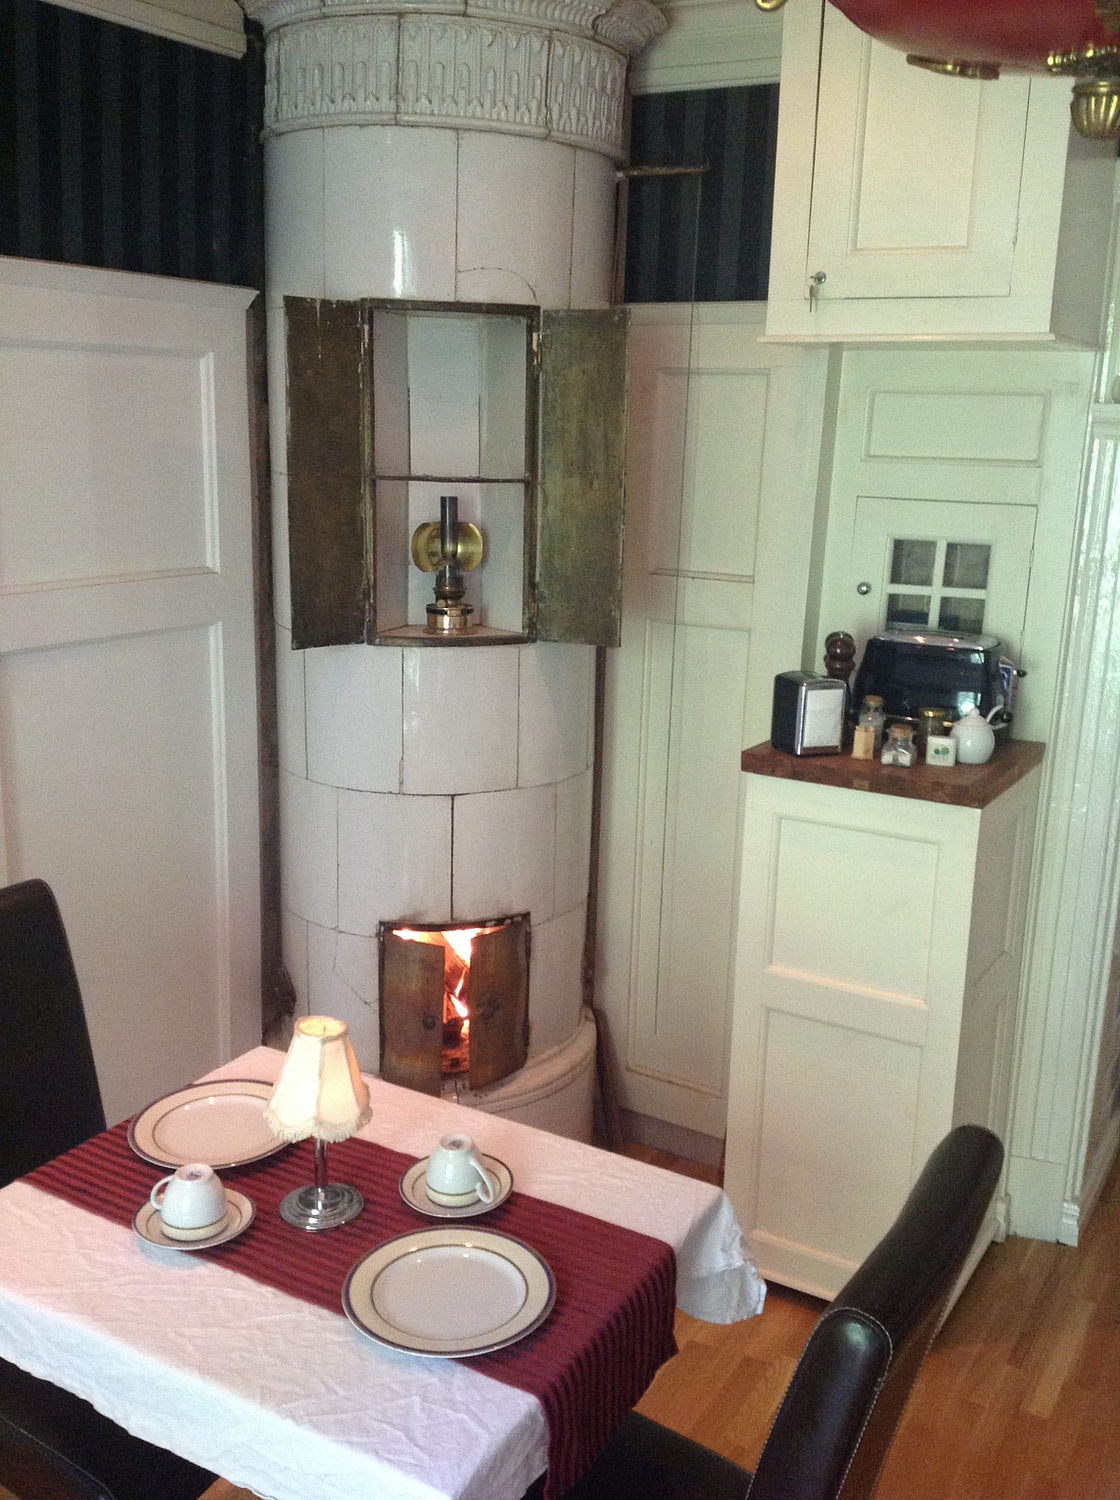 Dining hall with fire in tiled stove